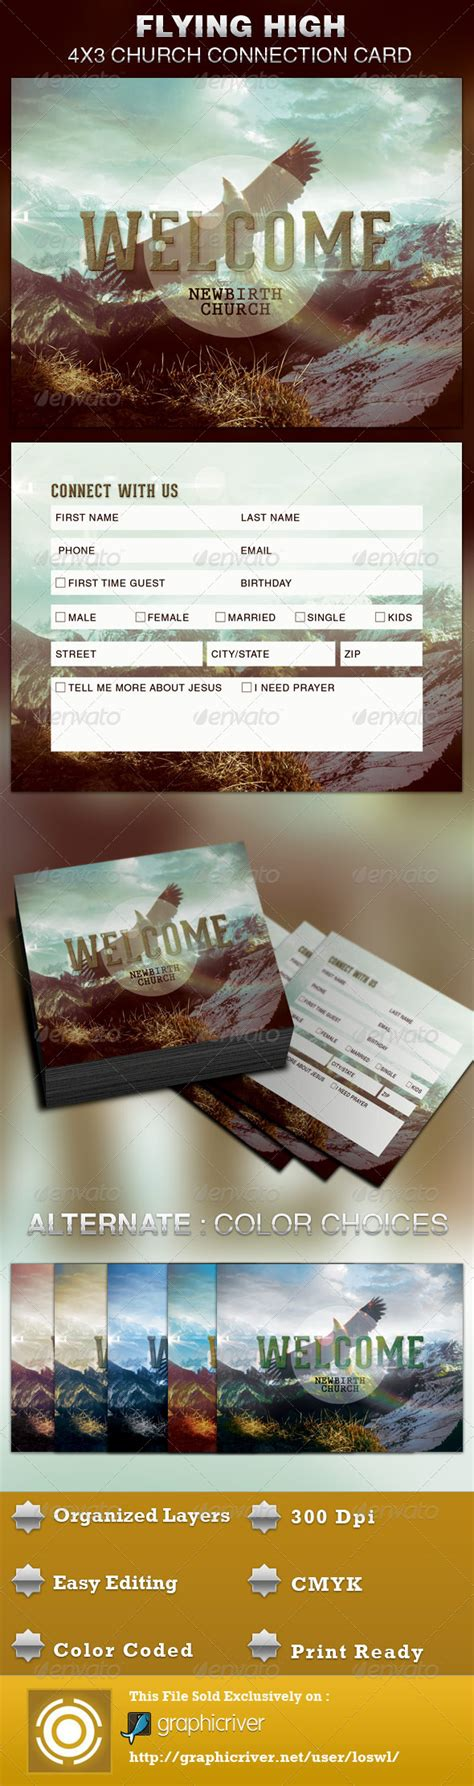 church connection card template vector flying high church connection card template graphicriver